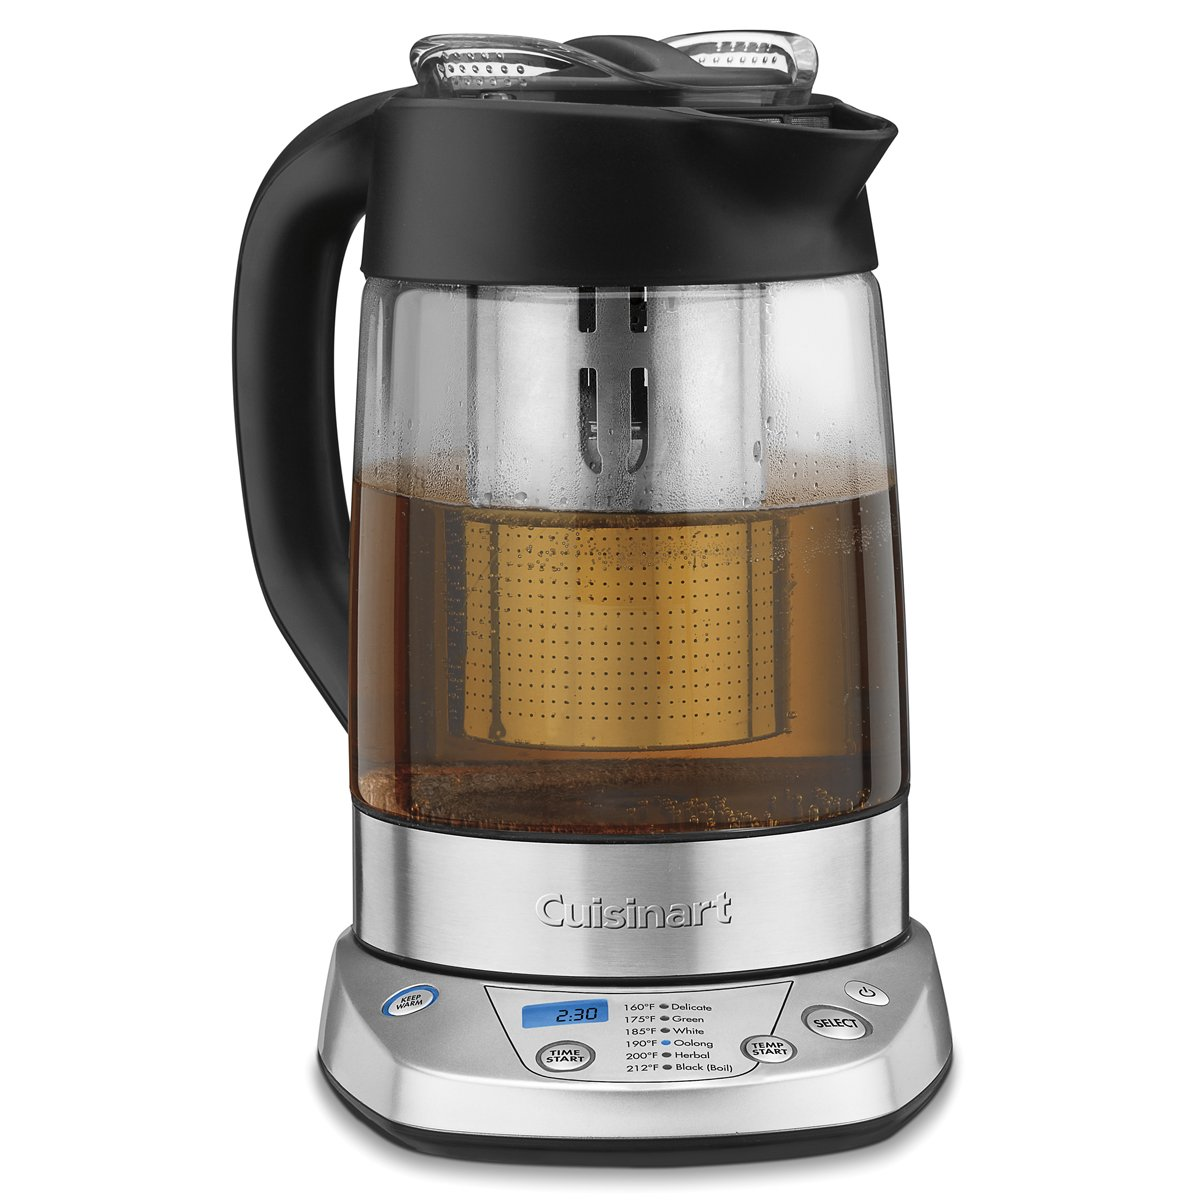 Cuisinart TEA-100 PerfecTemp Programmable Tea Steeper and Kettle